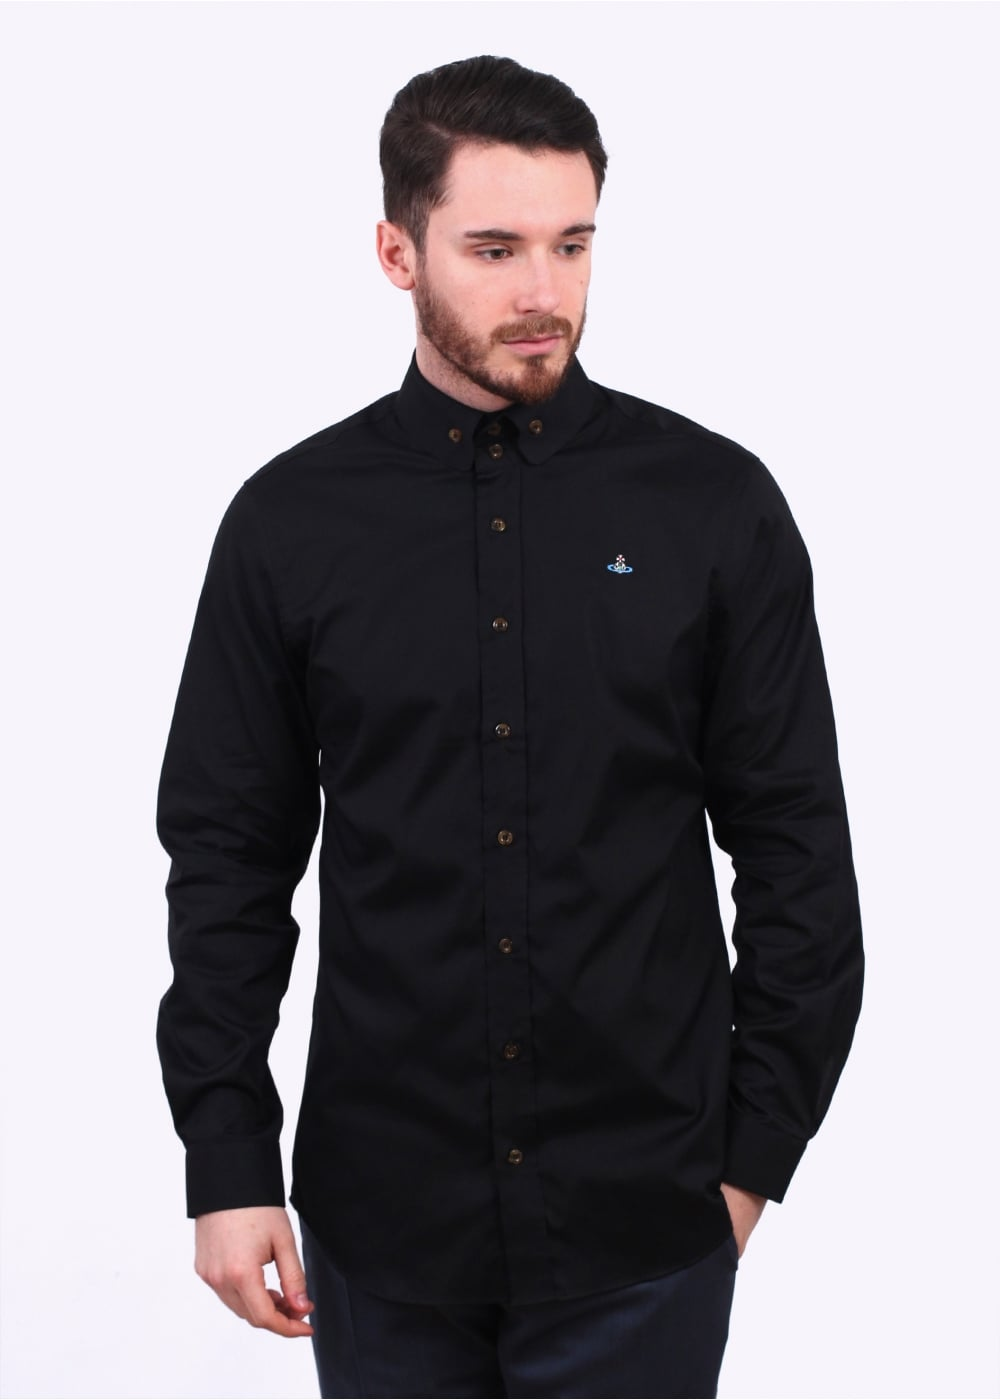 a53f8d6951bf Vivienne Westwood Mens Two Button Krall Shirt - Black - Shirts from Triads  UK